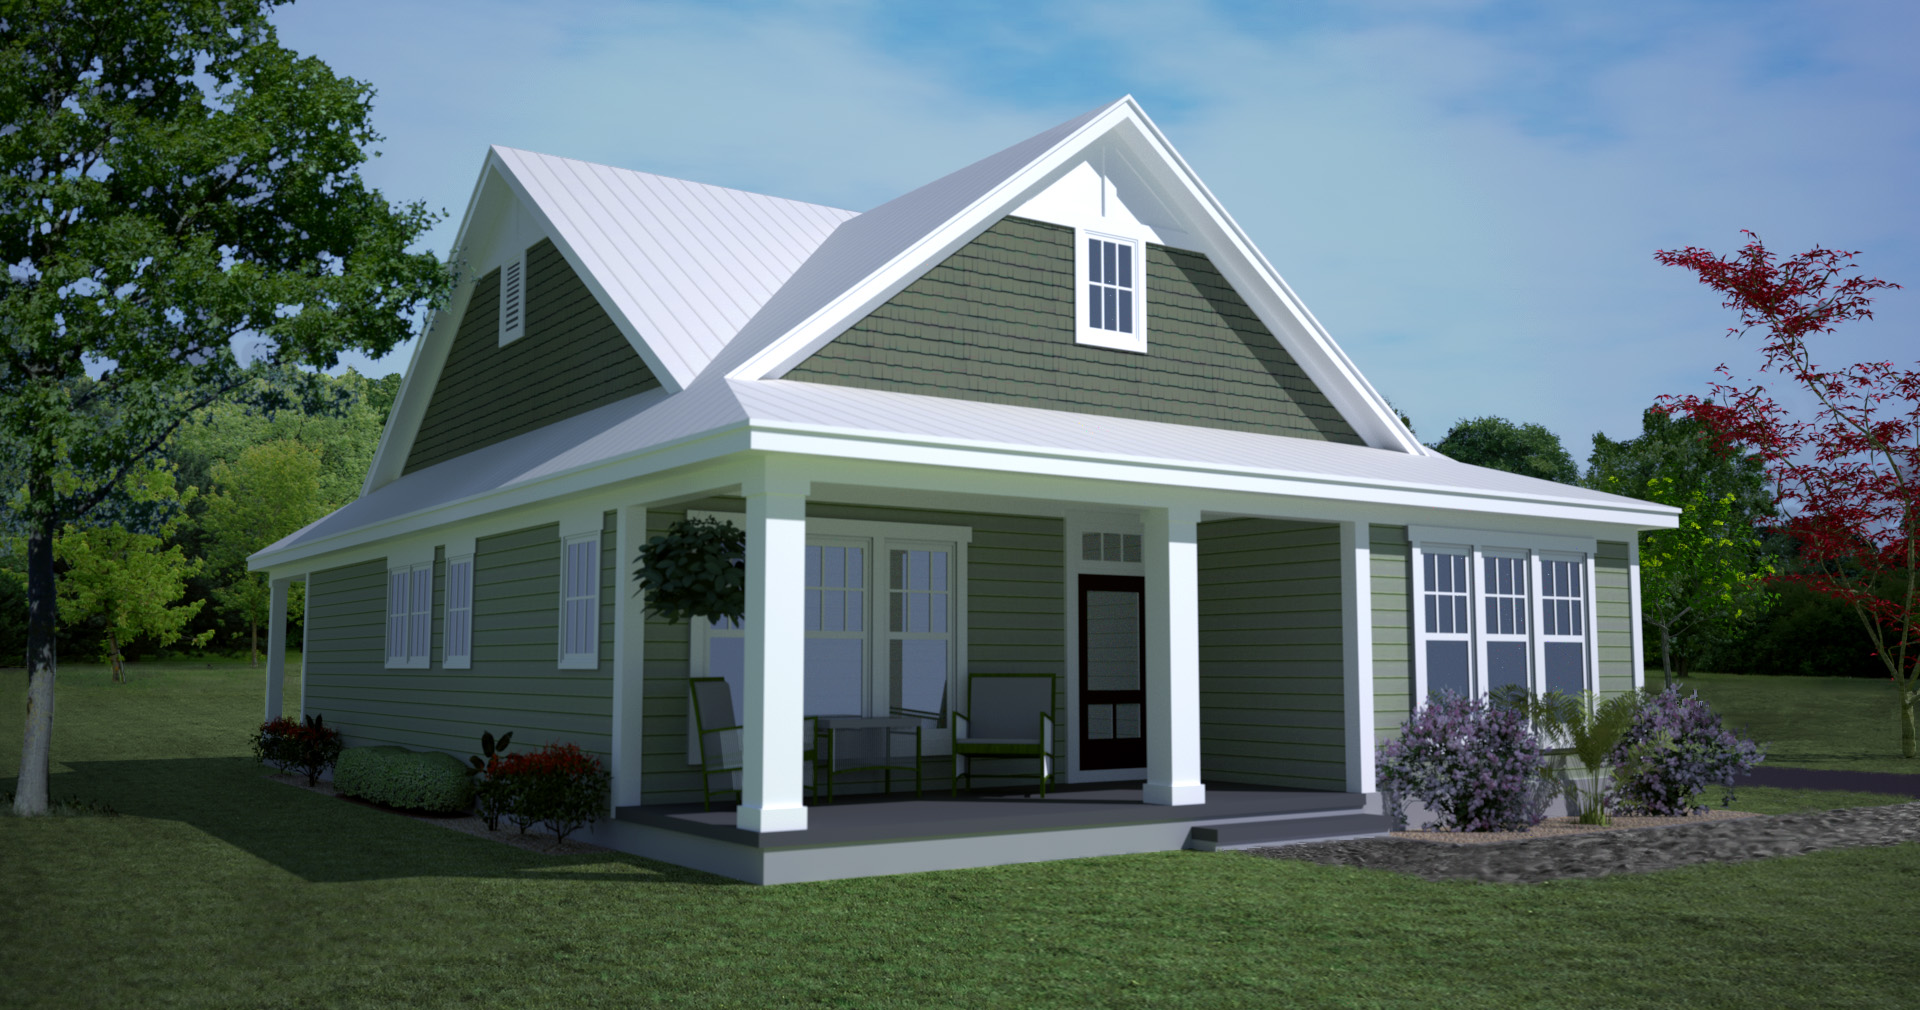 Classic american home styles house design plans for Classic house plans